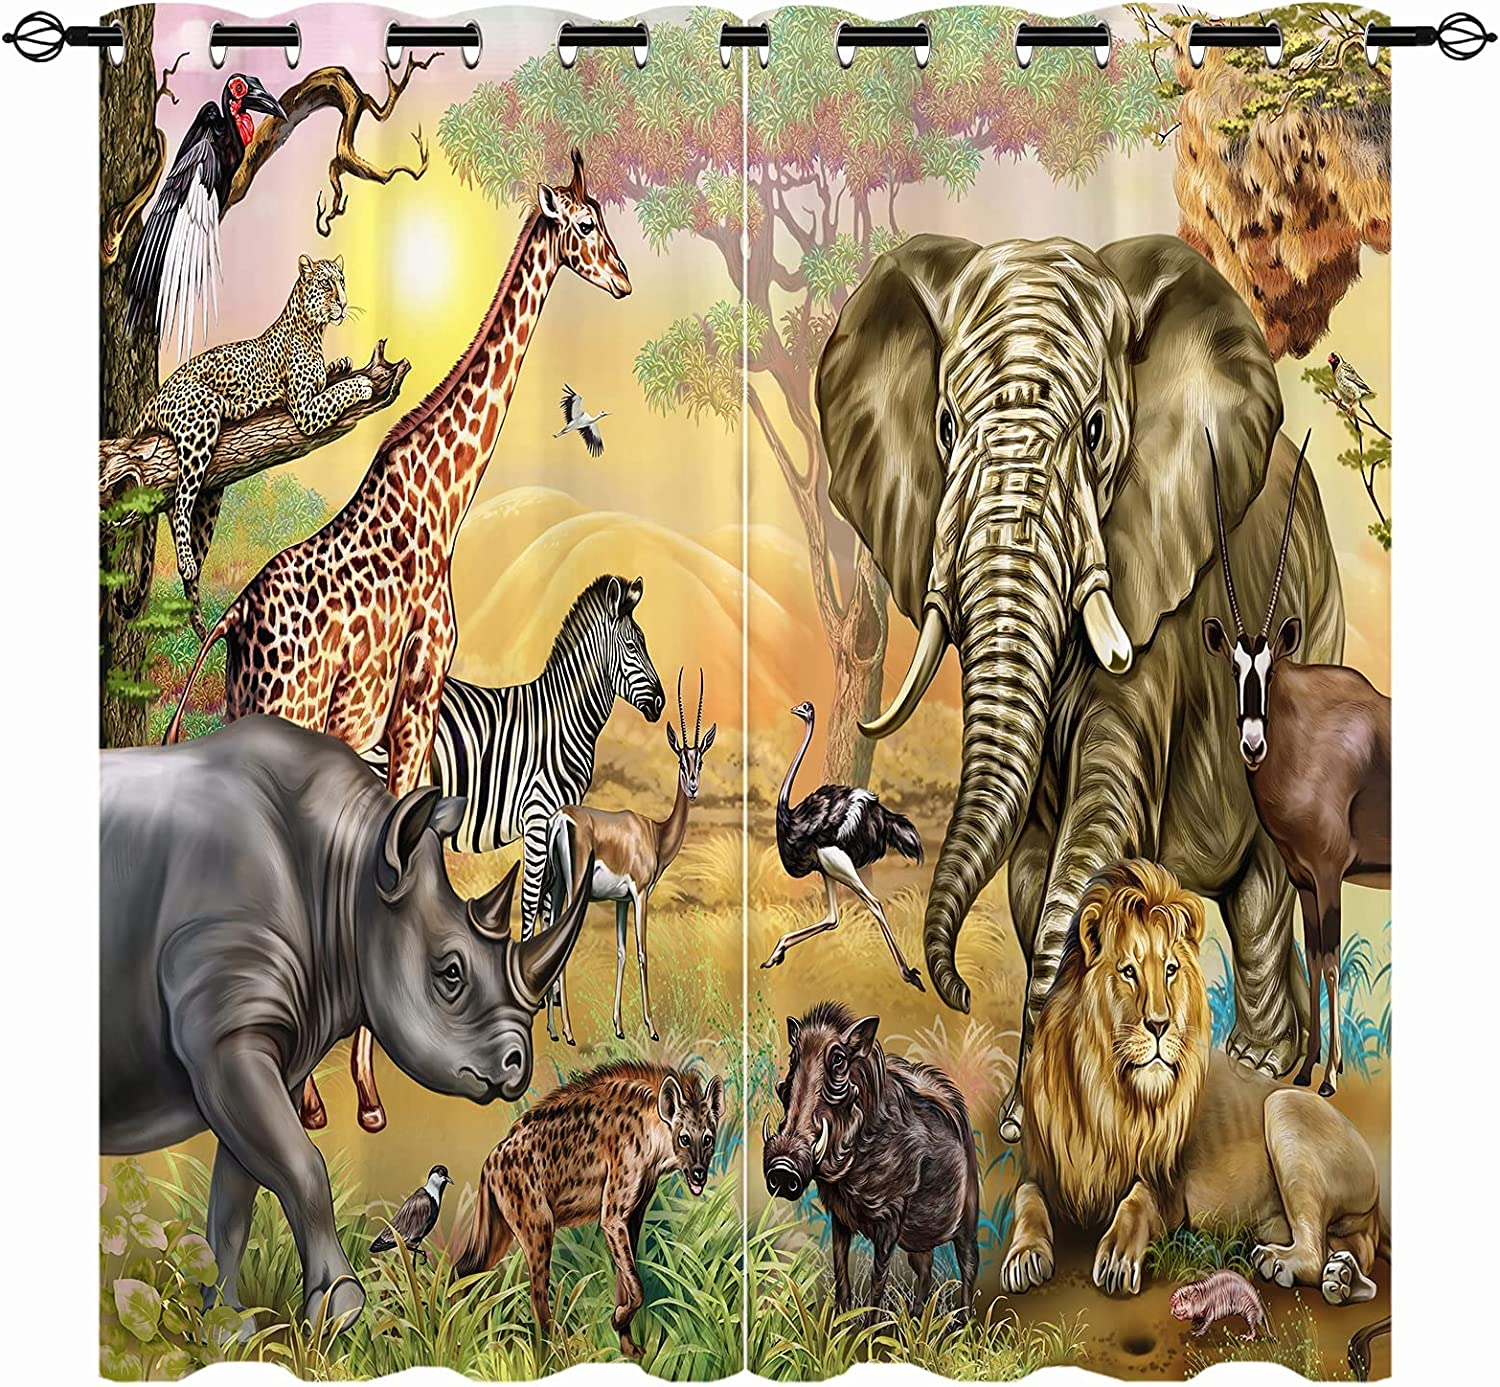 ANHOPE African Savannah Animals Blackout Kids Max 54% OFF - Limited Special Price Curtains Jungle